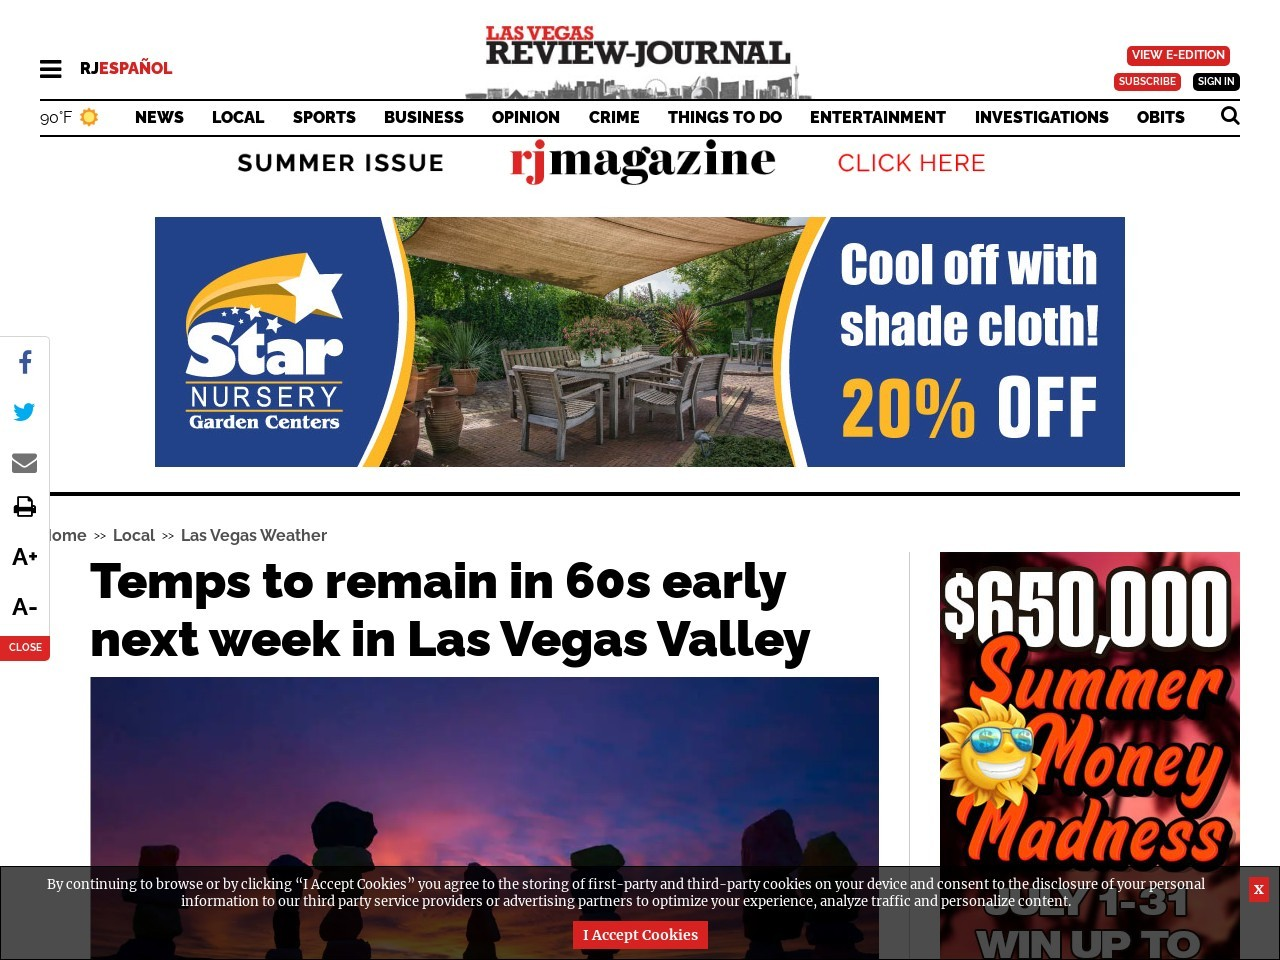 Temps to remain in 60s early next week in Las Vegas Valley